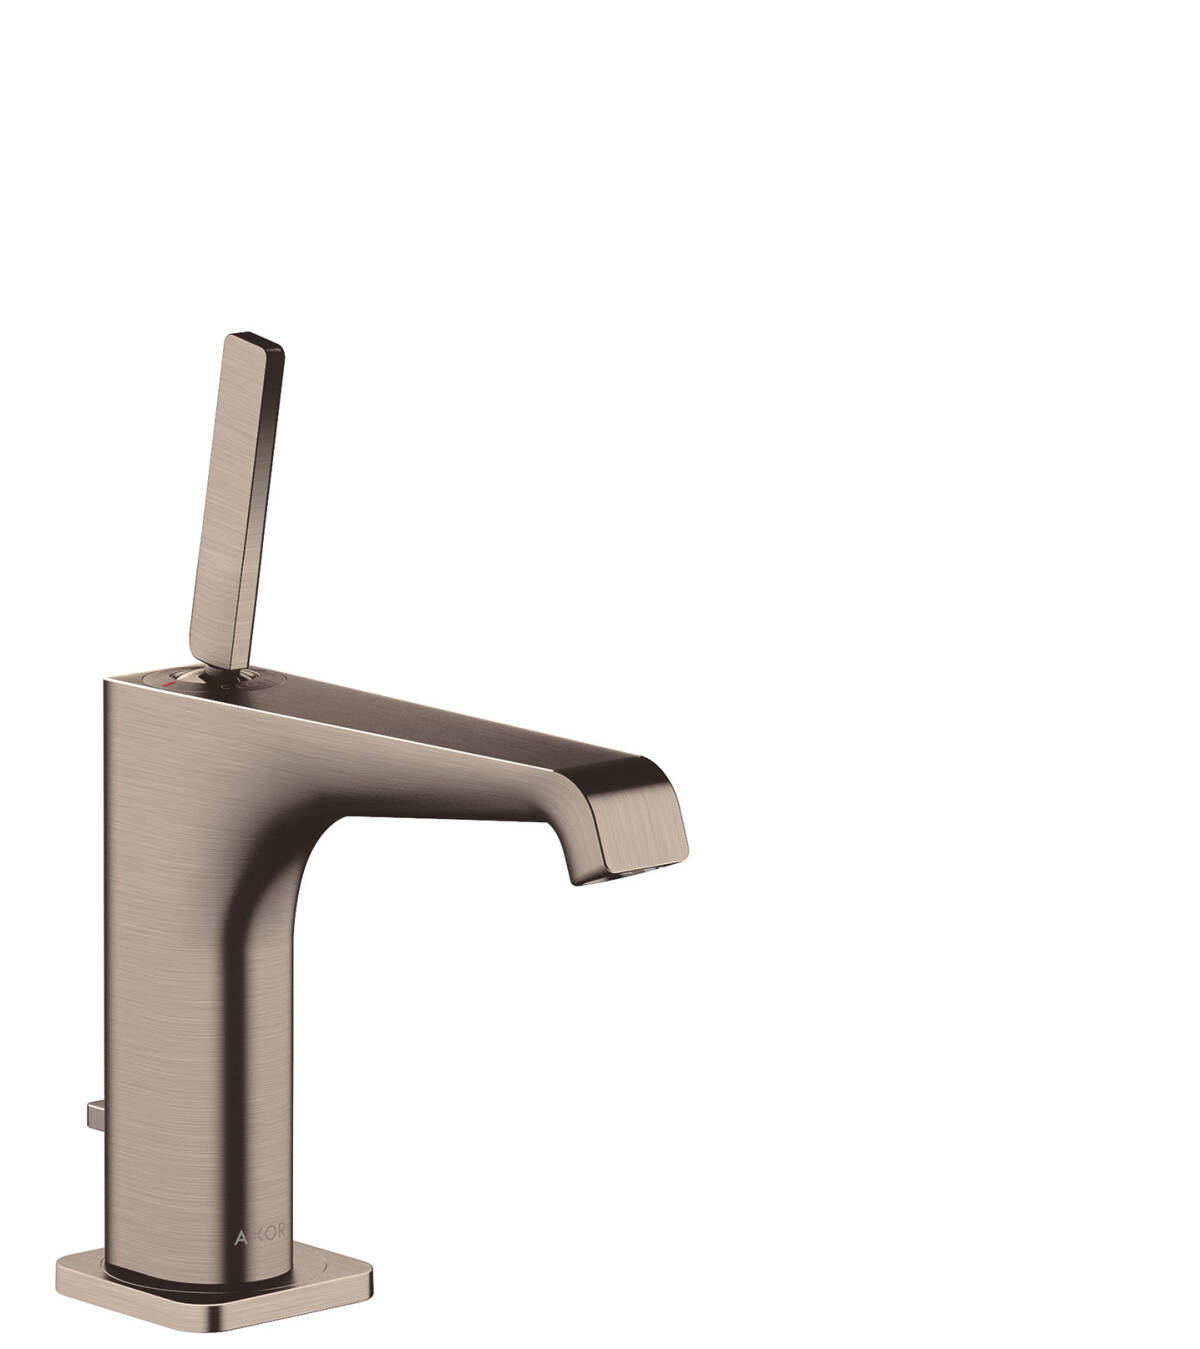 Single lever basin mixer 130 with pop-up waste set, Brushed Nickel, 36100820